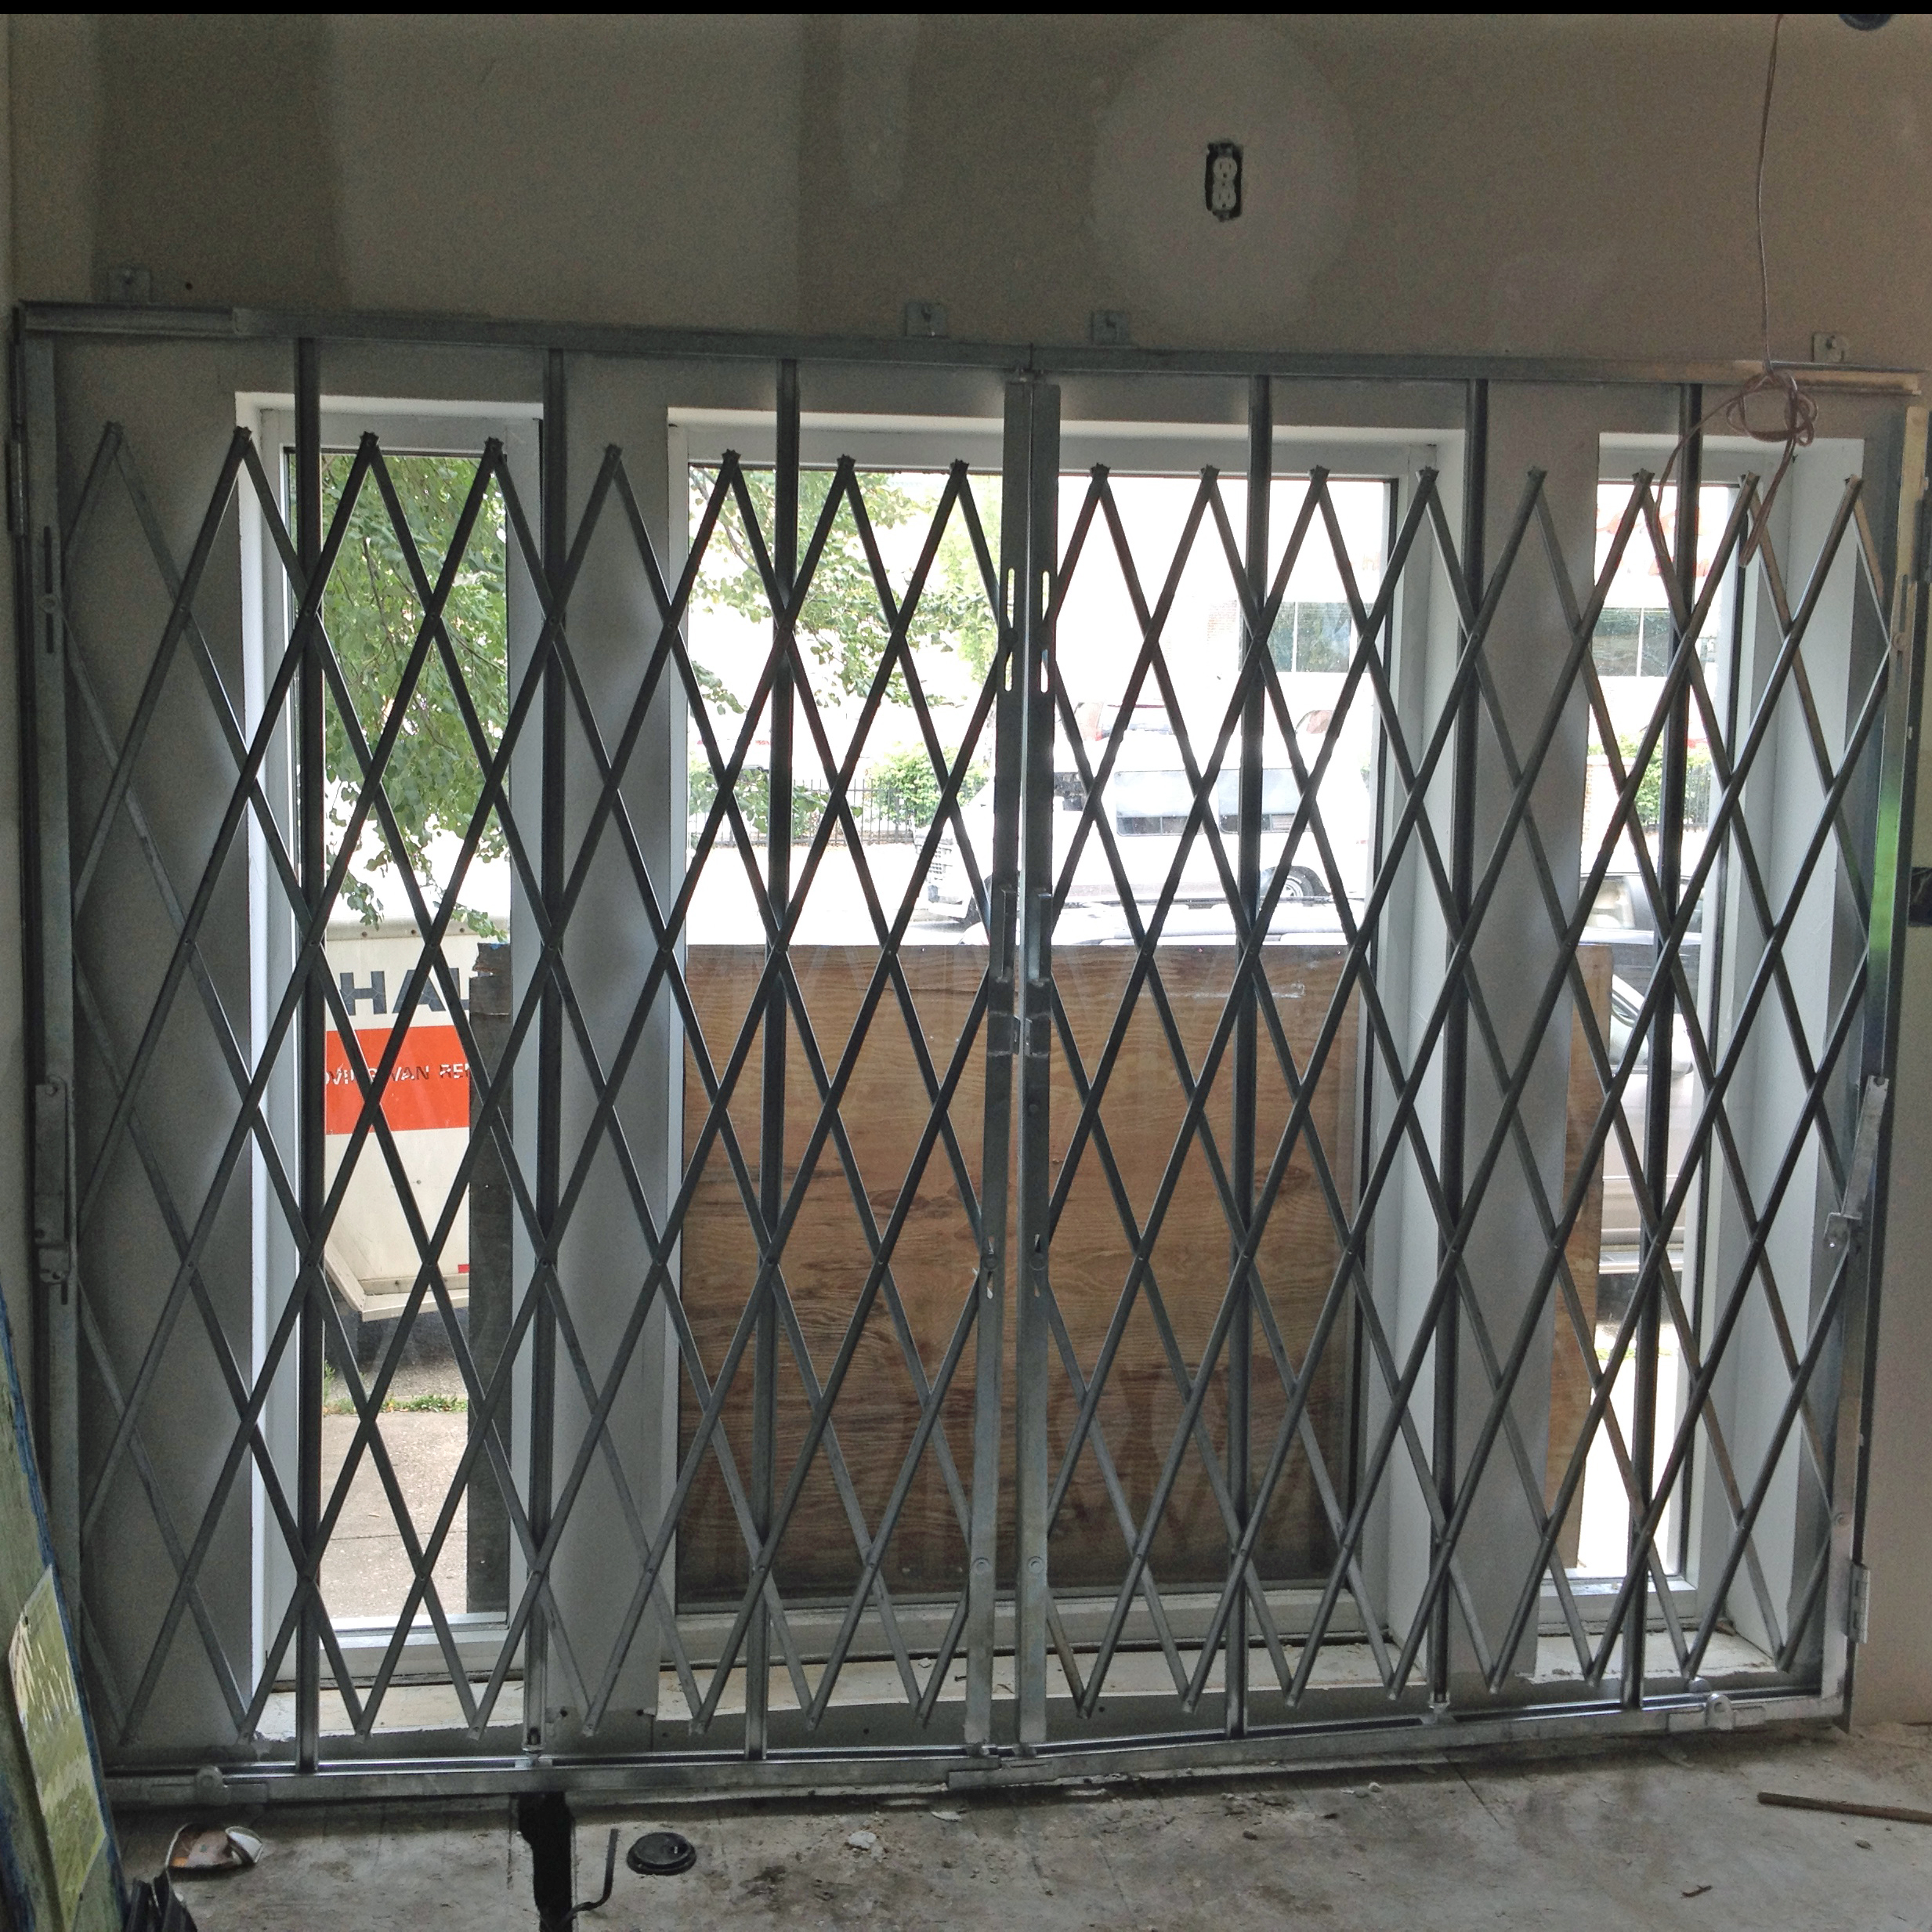 Hybrid Security Gates Illinois Engineered Products